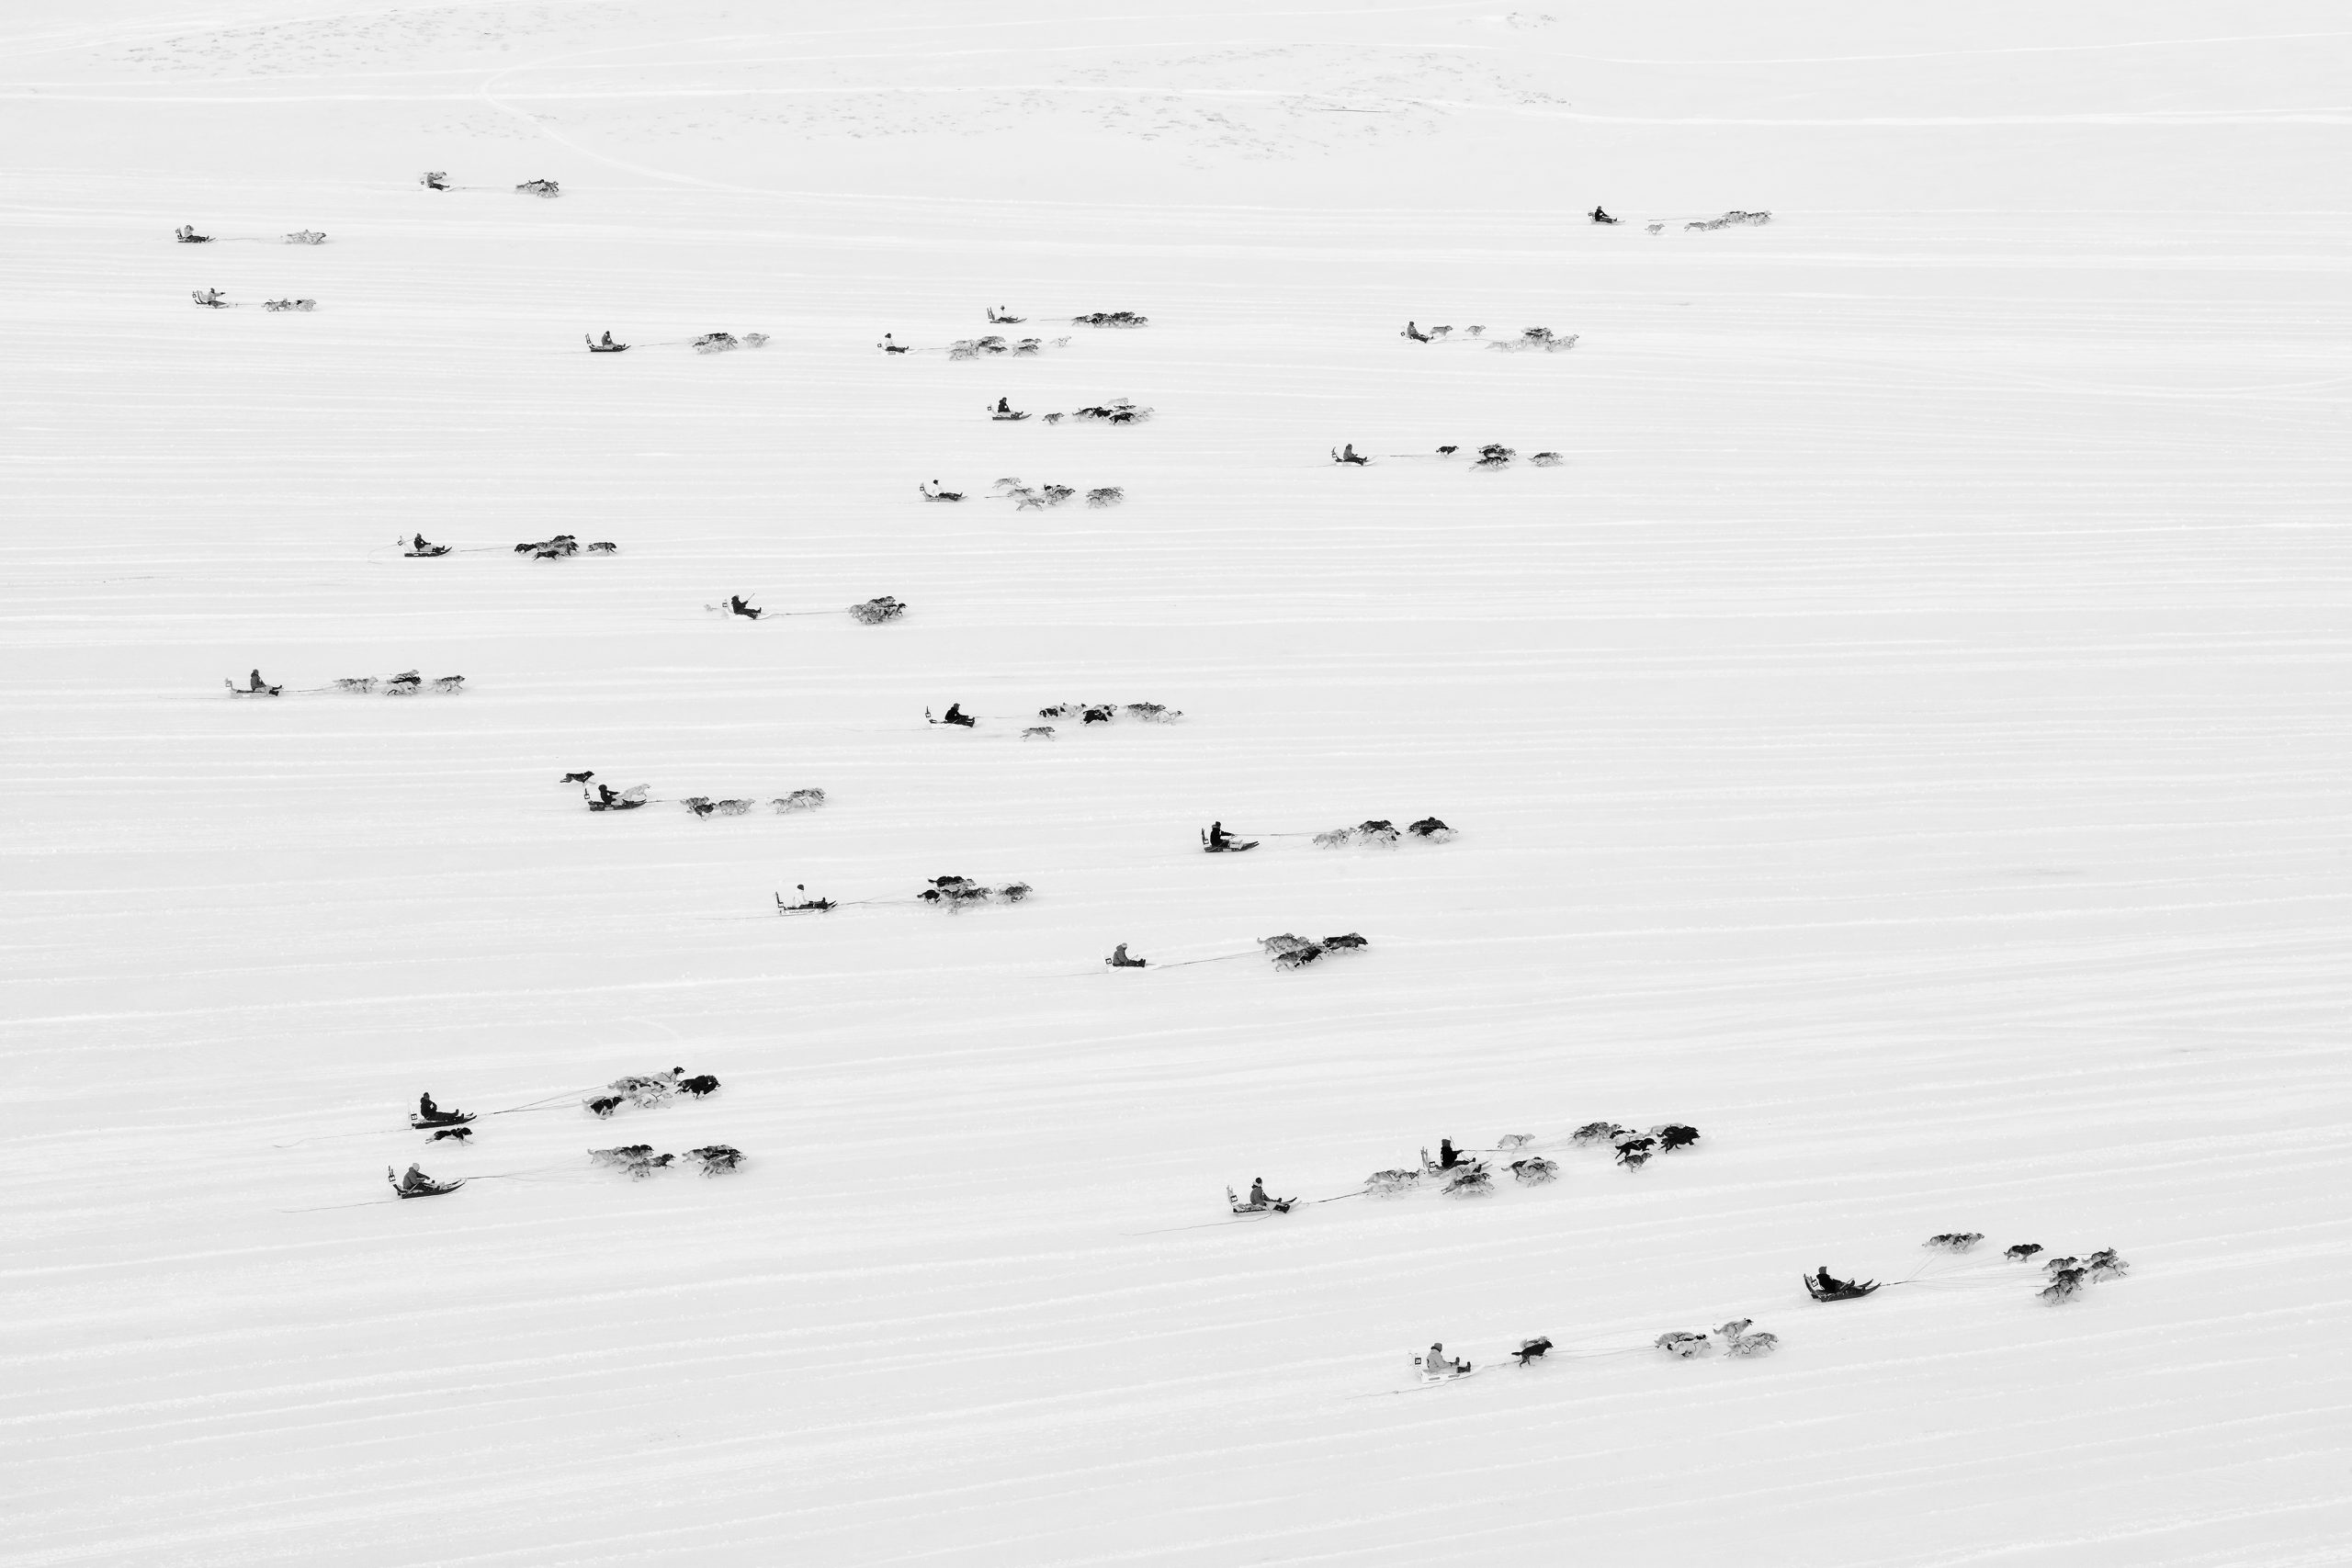 The image was shot in Ilulissat, Greenland in March 2018 during the annual national sled dog race.